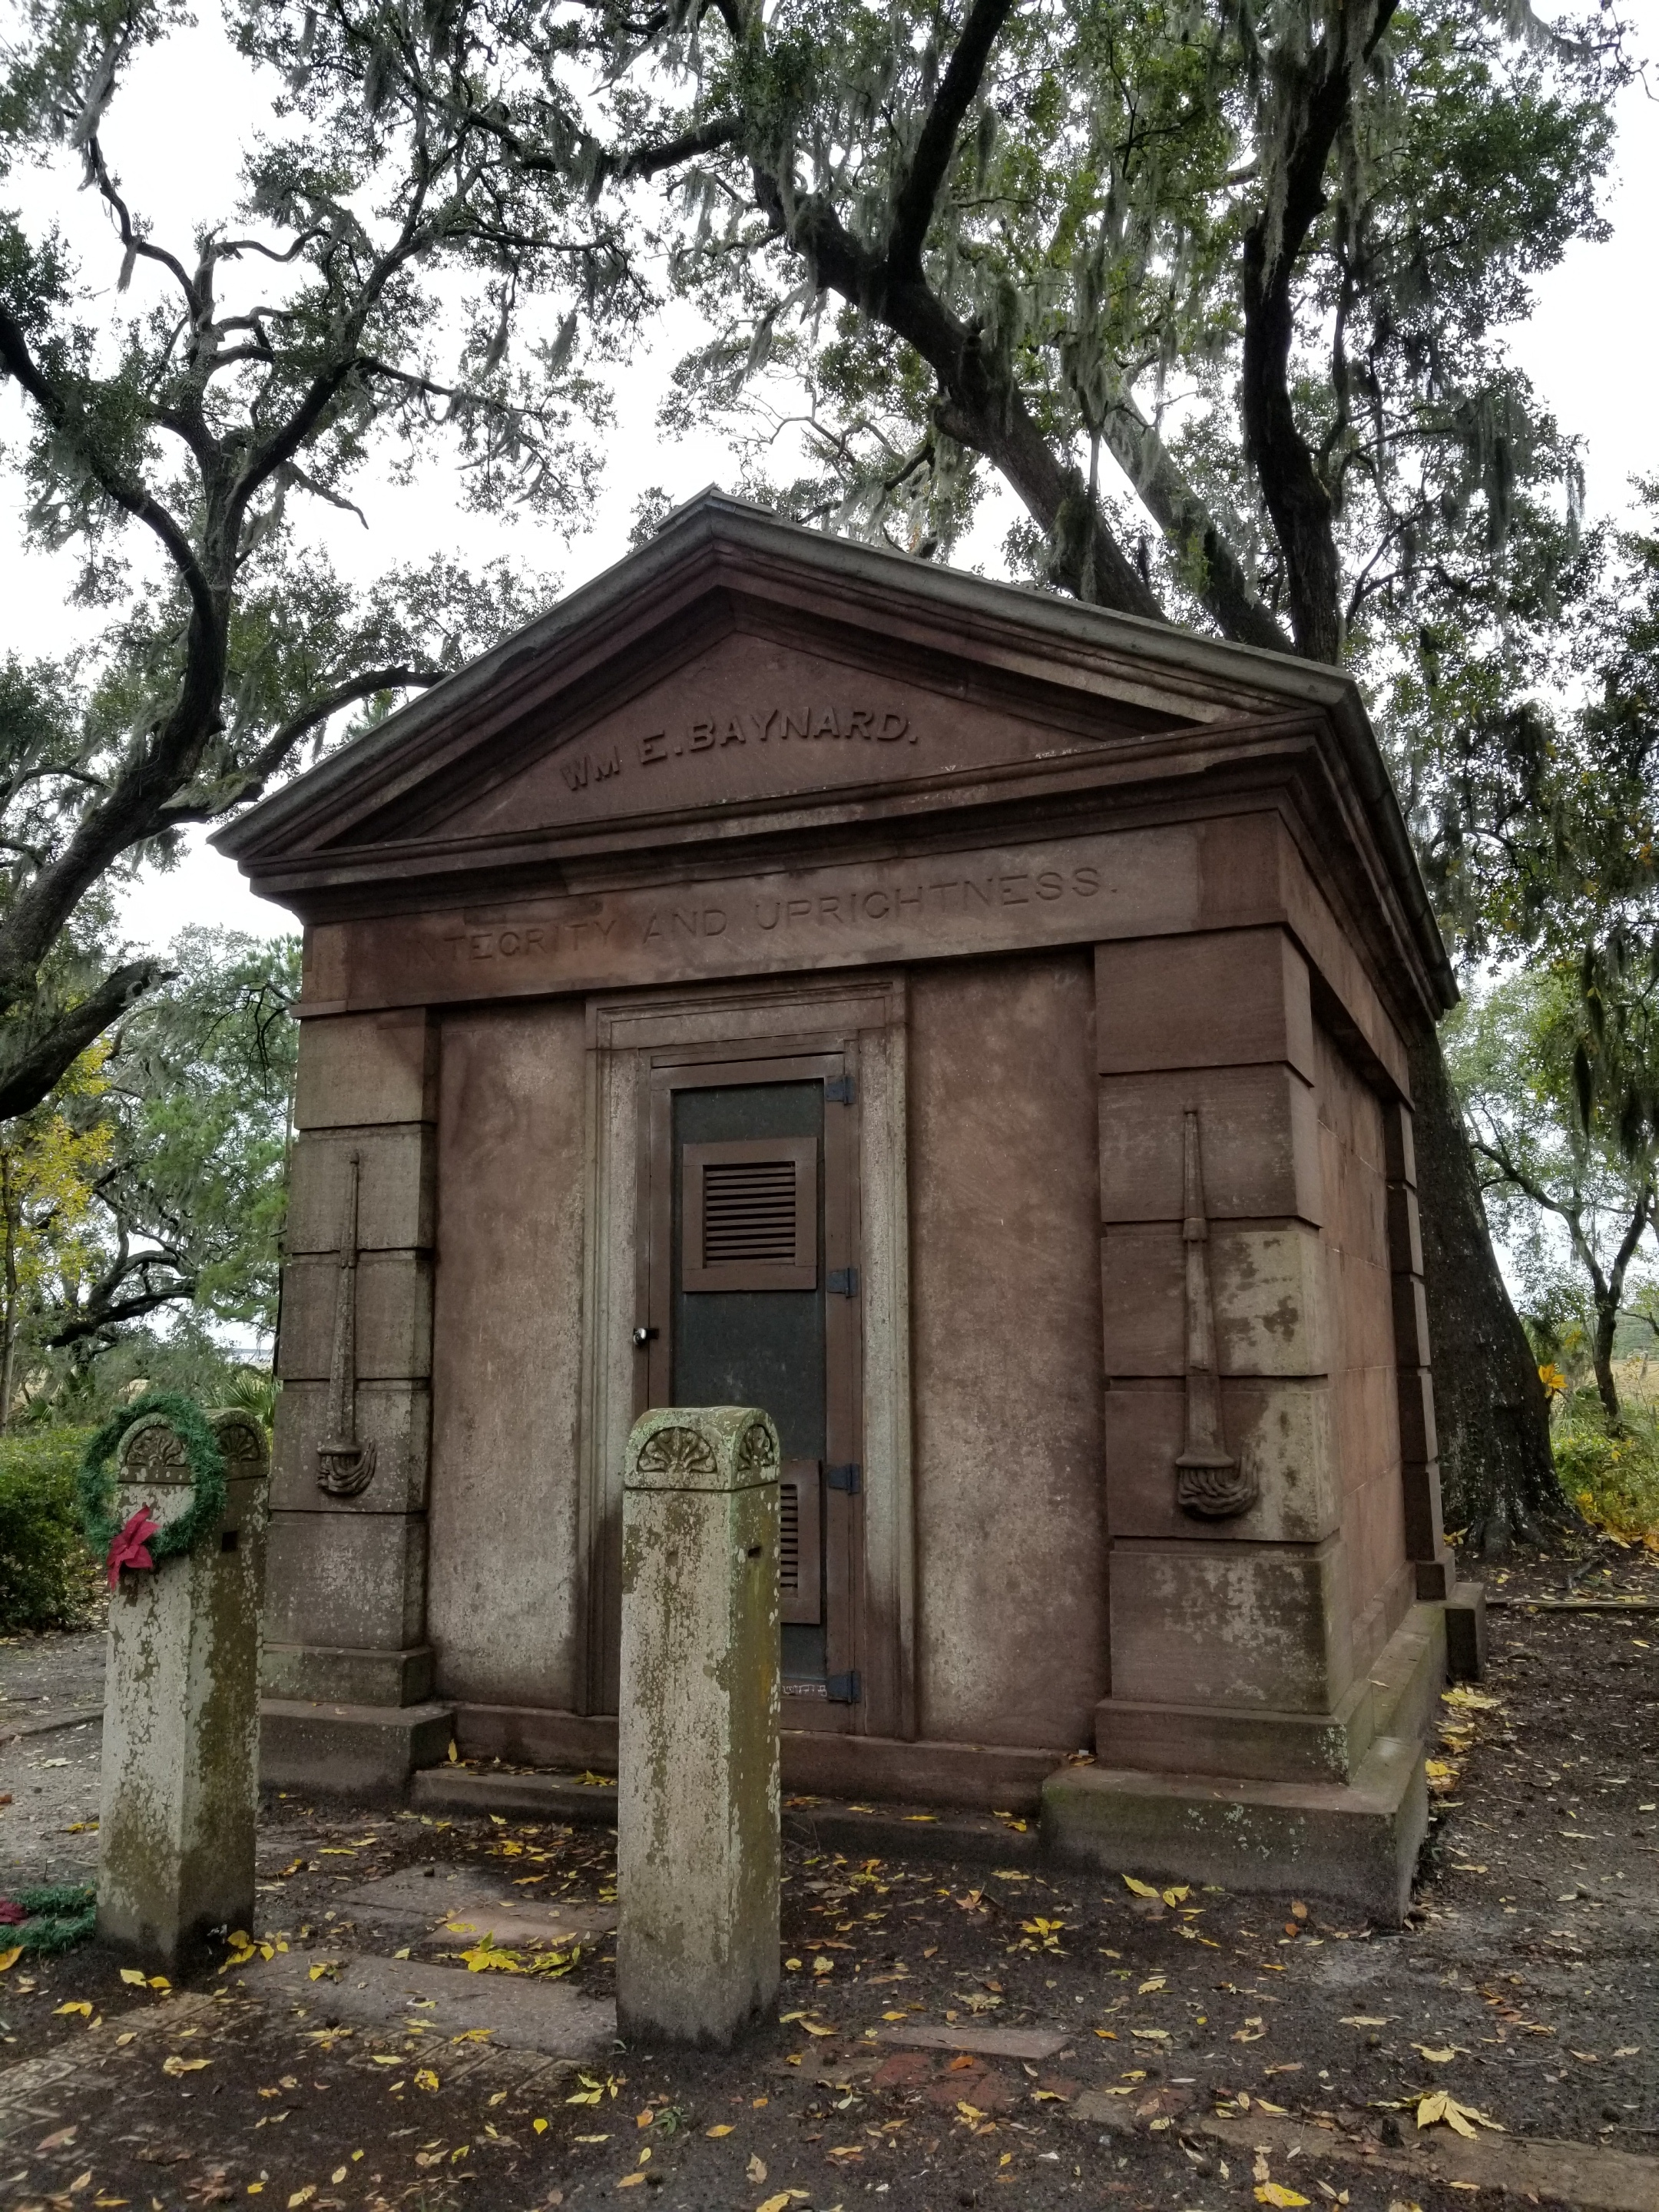 The Baynard Mausoleum - the oldest standing structure on Hilton Head Island. Note that the torches on the front of the building are upside down to symbolize a life cut short - Baynard died at 49 in 1849.  Click on this photo to see a 1-minute video about the restoration of the bluestone slab roof.